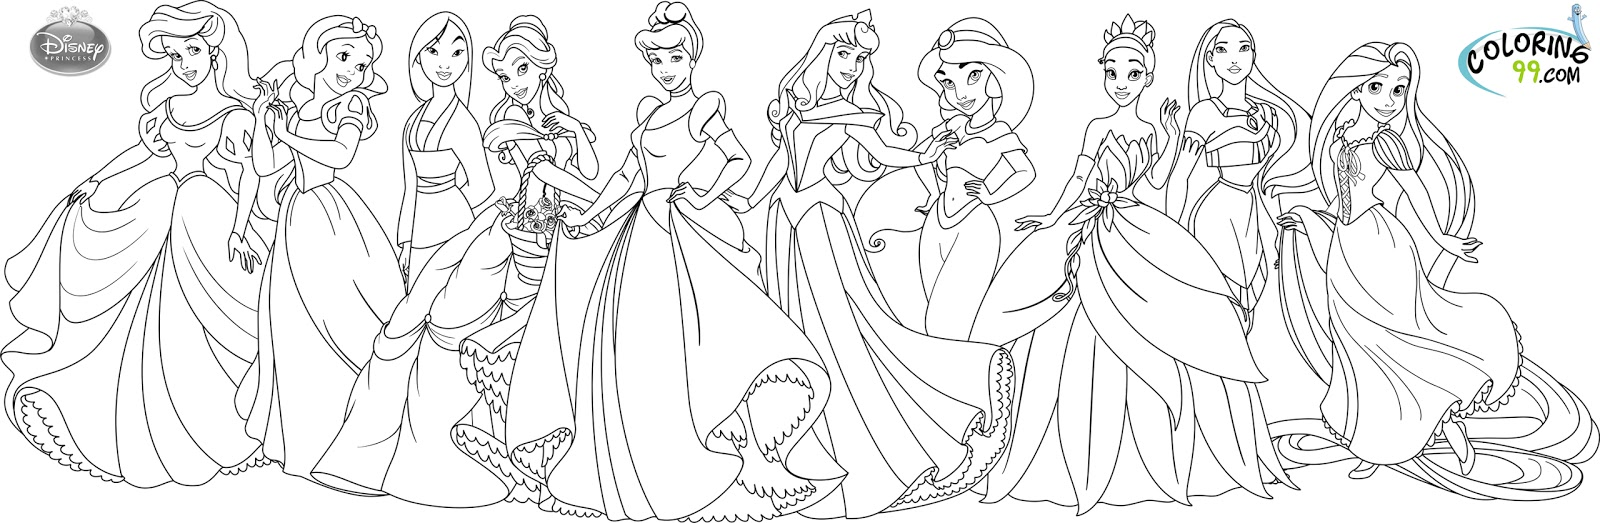 disney princesss coloring pages - photo#12